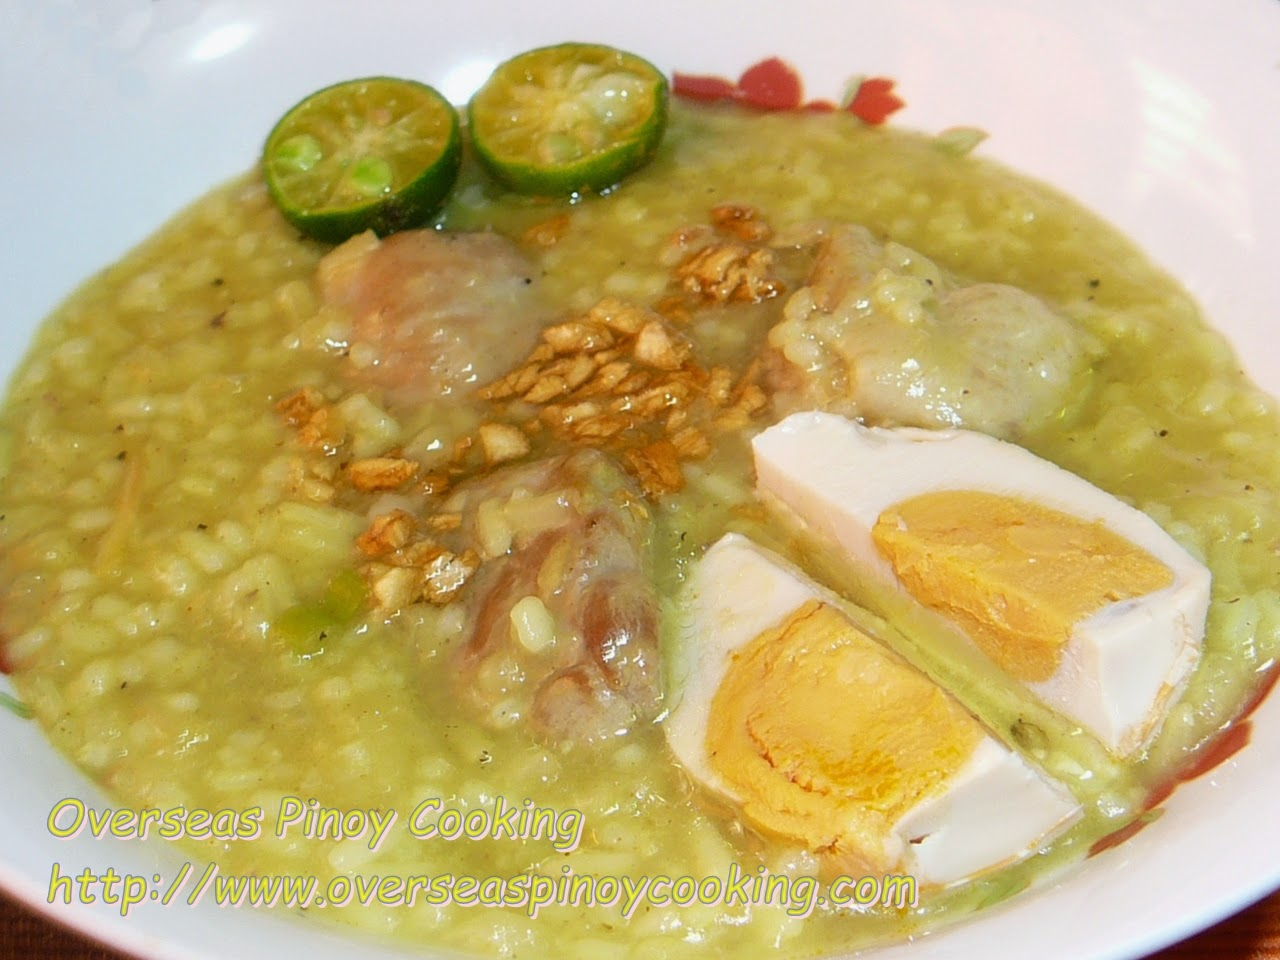 Lugaw with Salted Egg